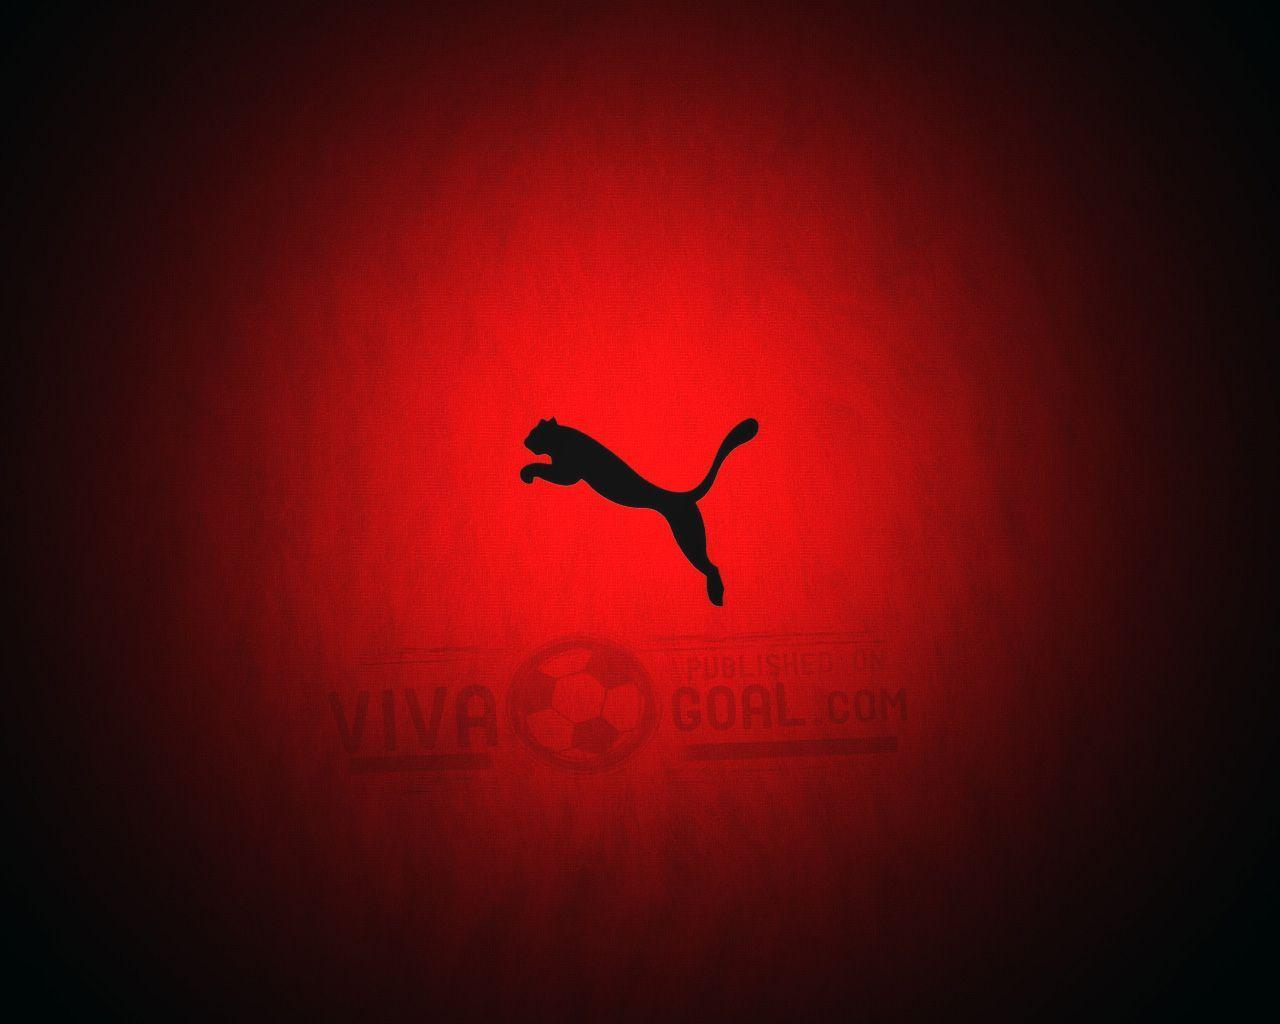 Puma Wallpapers